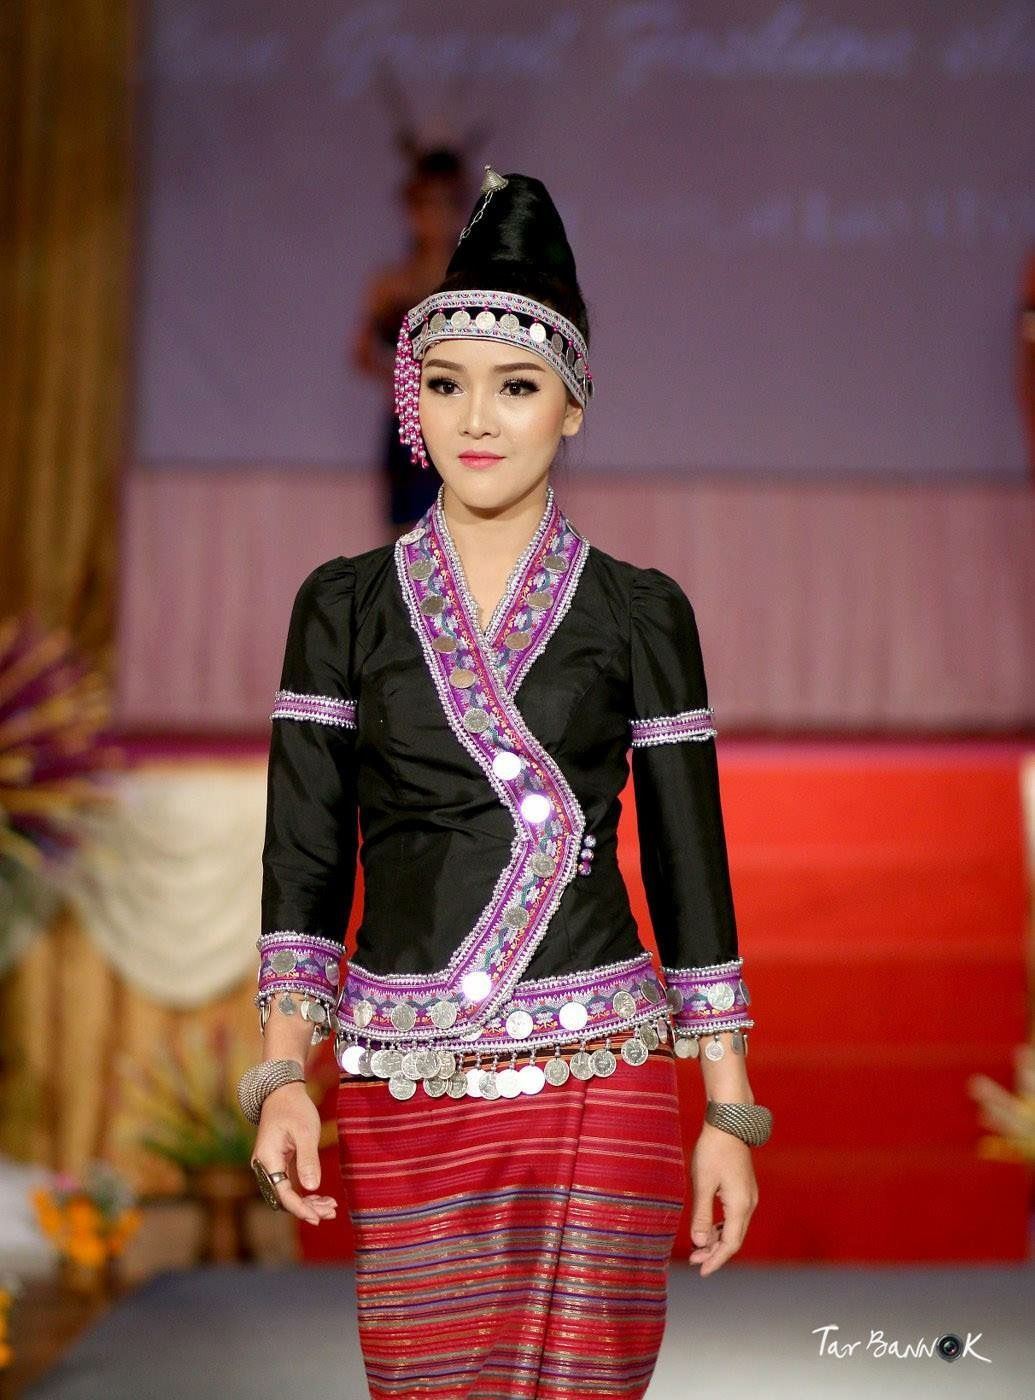 Pin By Toni Philadeng On Lao And Laos  Thai Traditional -2863